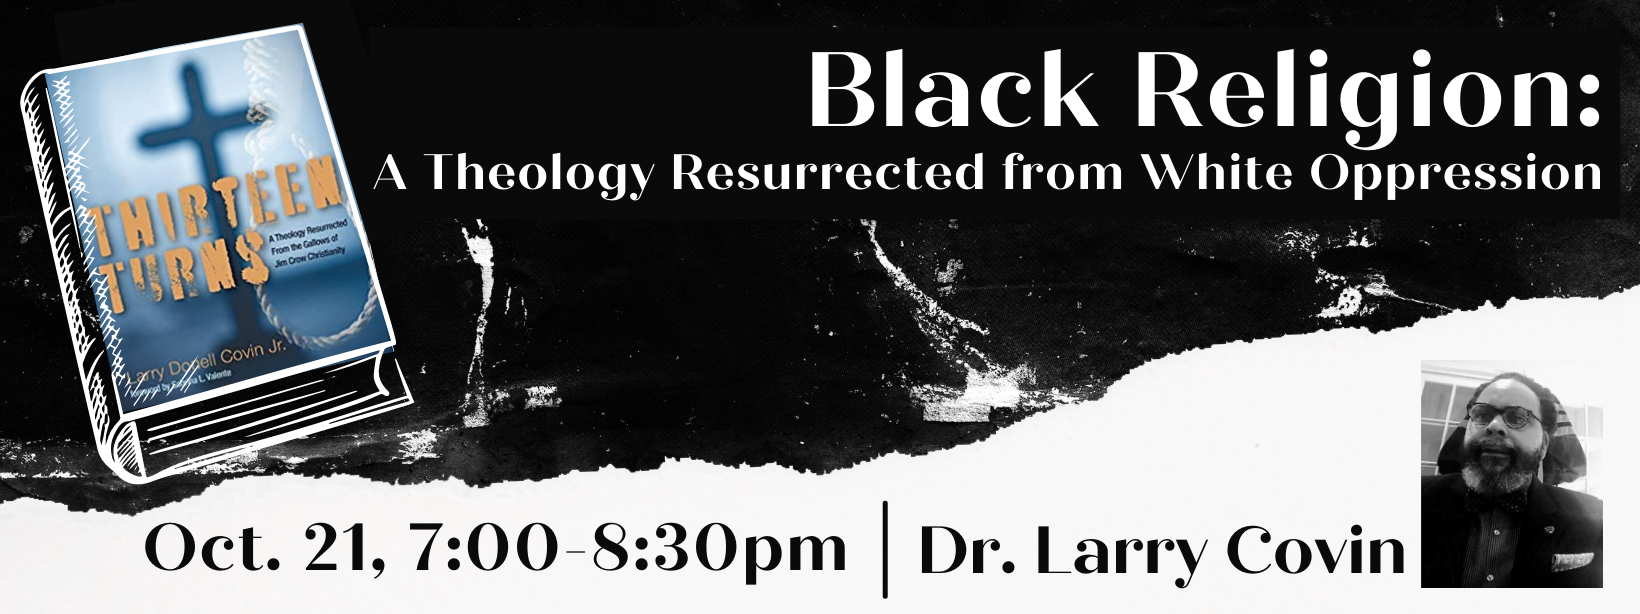 Black Religion: A Theology Resurrected from White Oppression